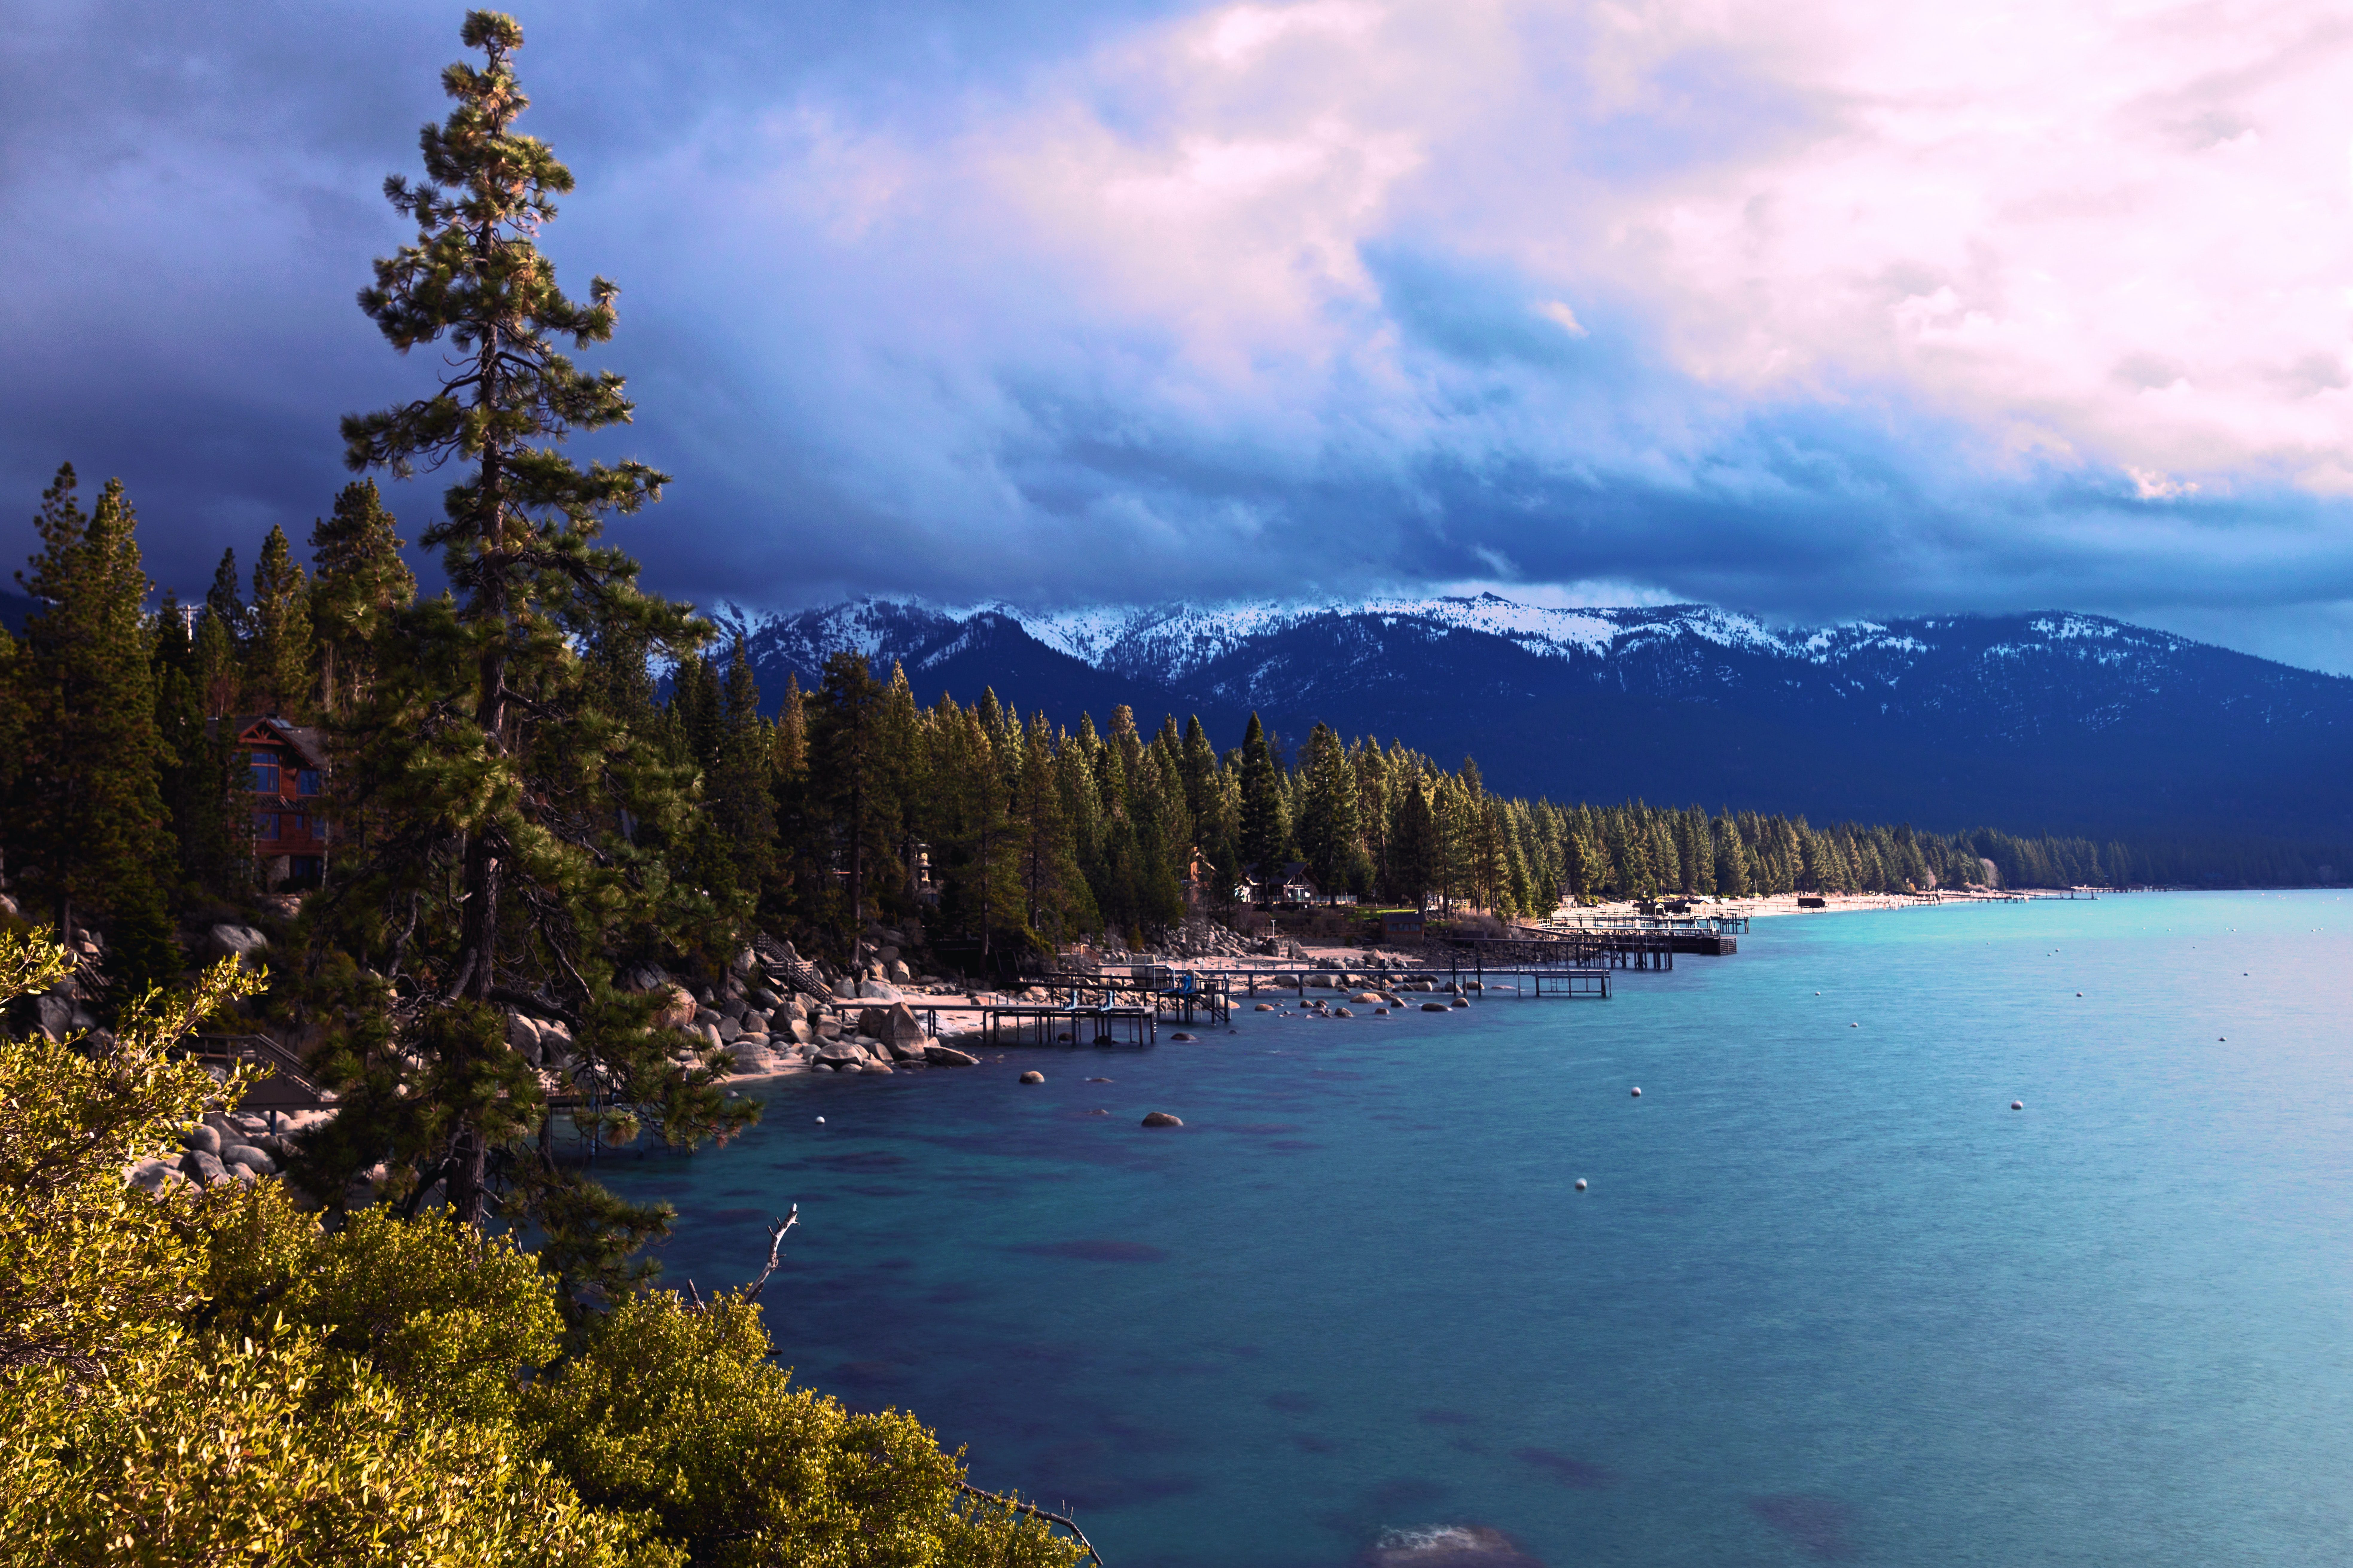 Photo of Lake Tahoe with snow-capped mountains and piers lining the lake